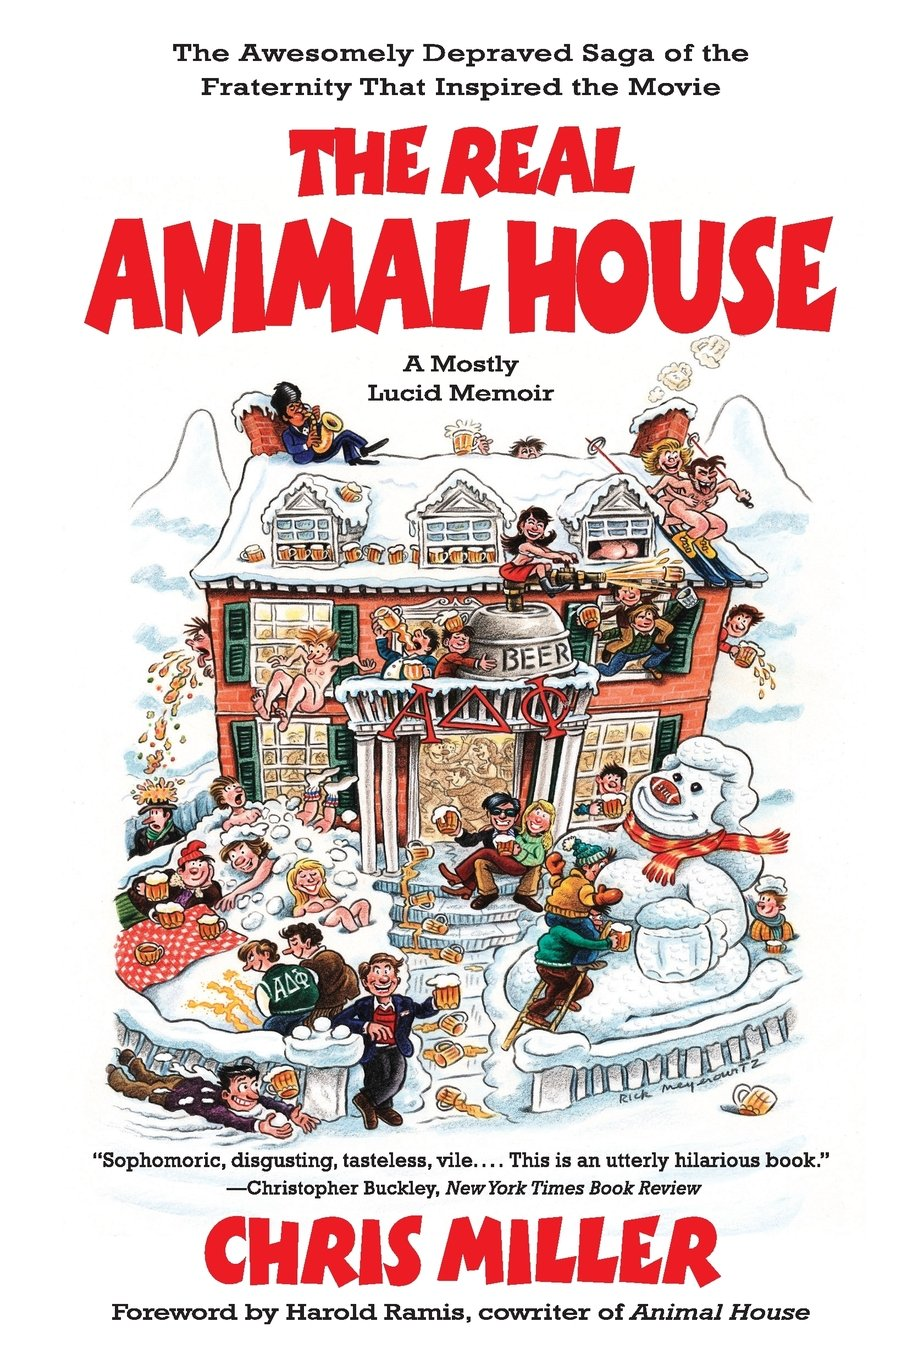 amazon com the real animal house the awesomely depraved saga of